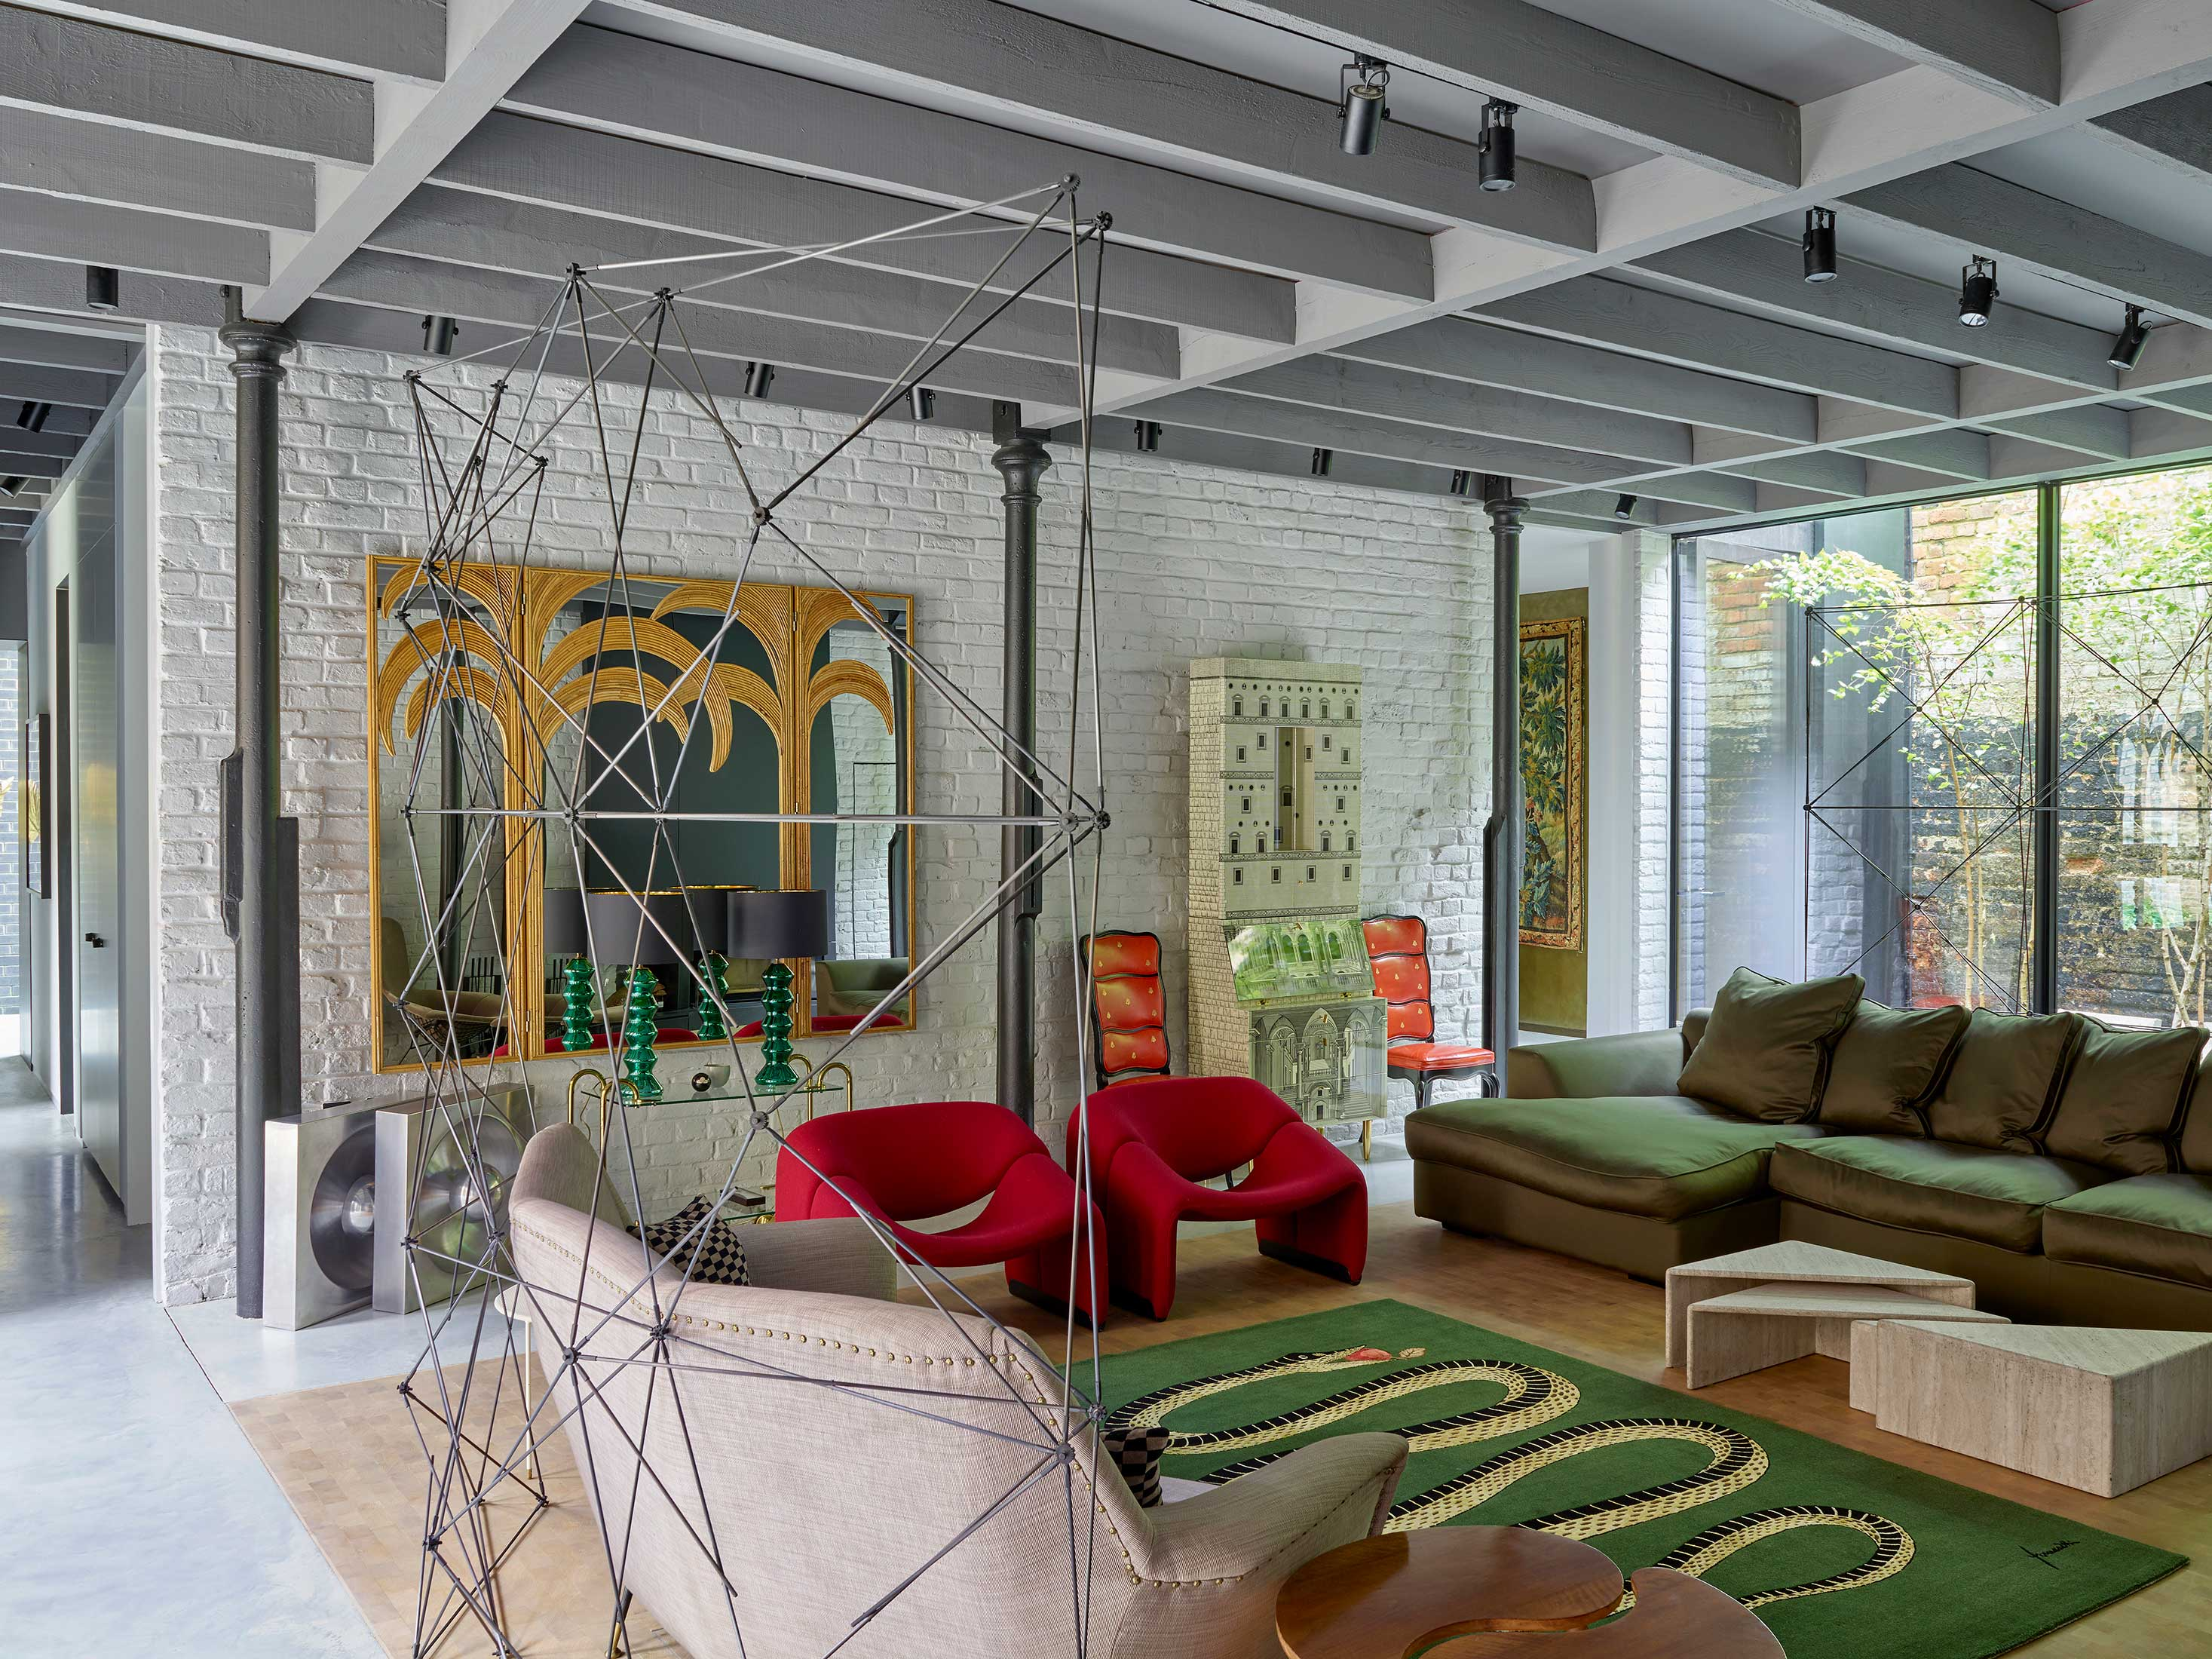 Living room with raftered ceiling and original cast iron columns salvaged from the stables flanked on two sides by minimal sliding glass walls onto cobbled courtyards.